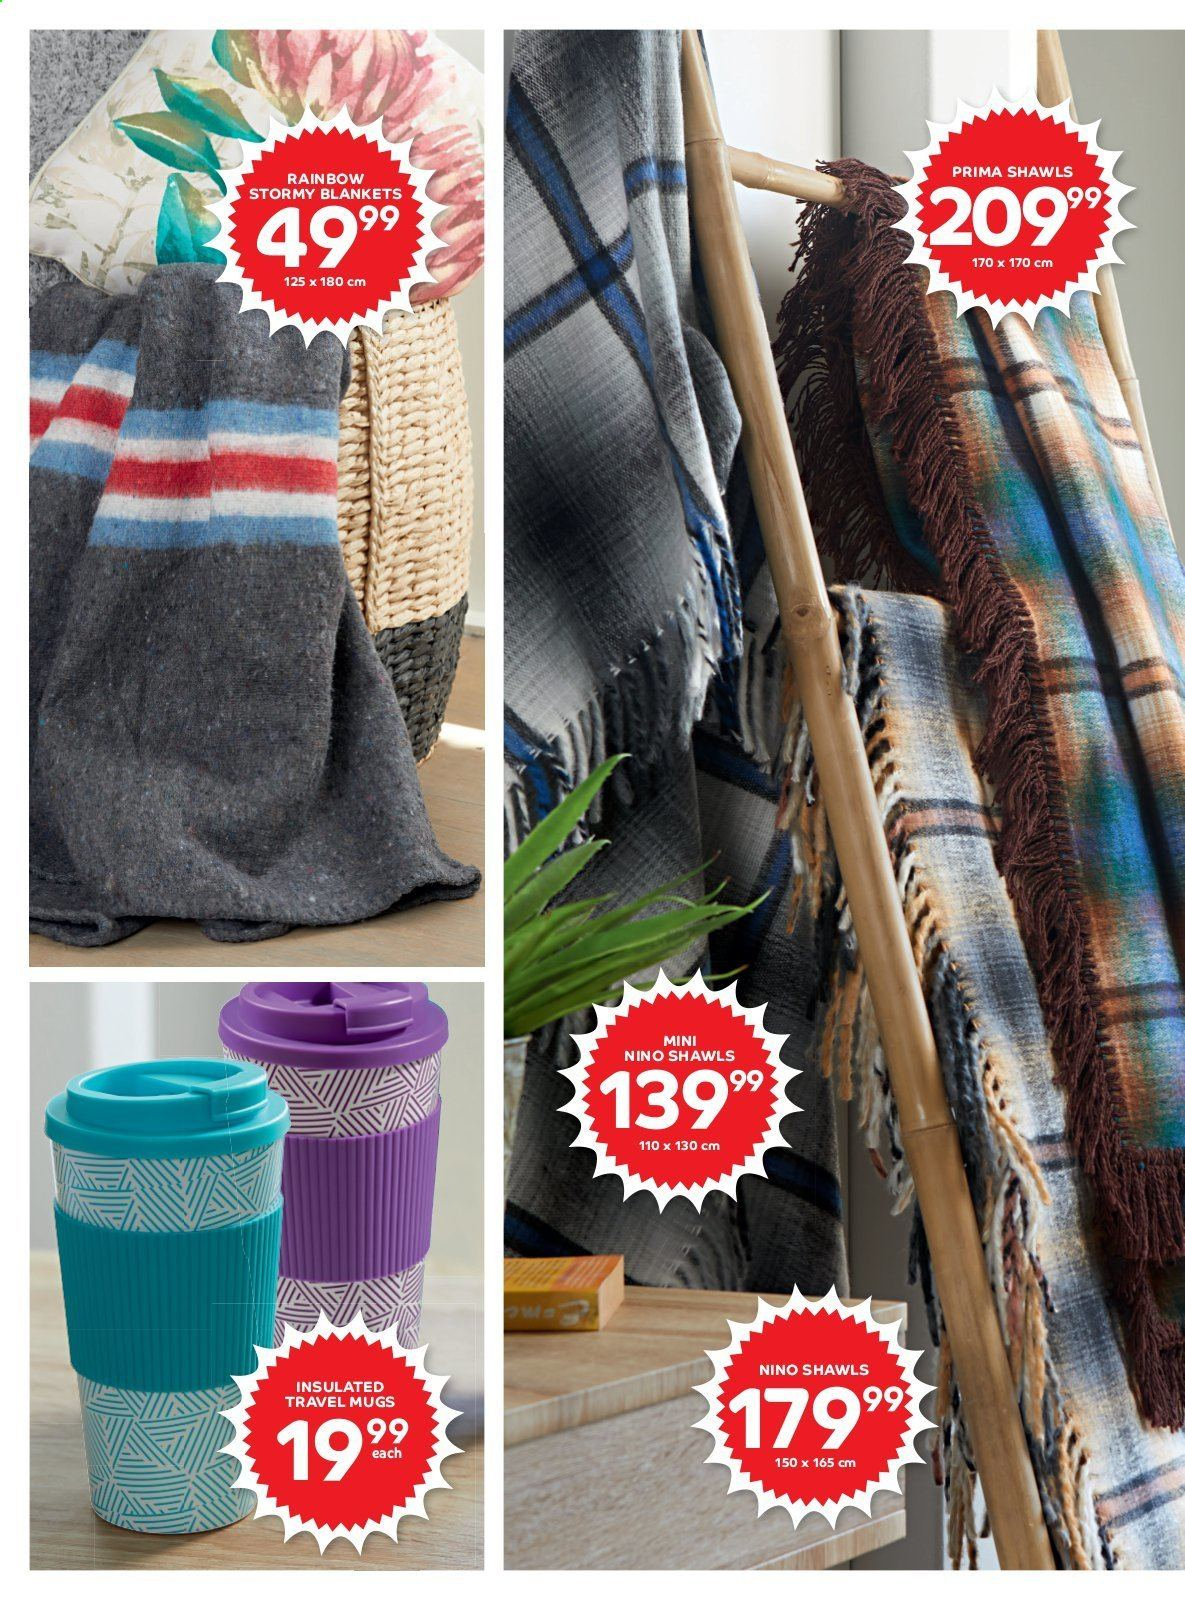 PEP Stores catalogue  - 04.26.2019 - 05.30.2019. Page 6.